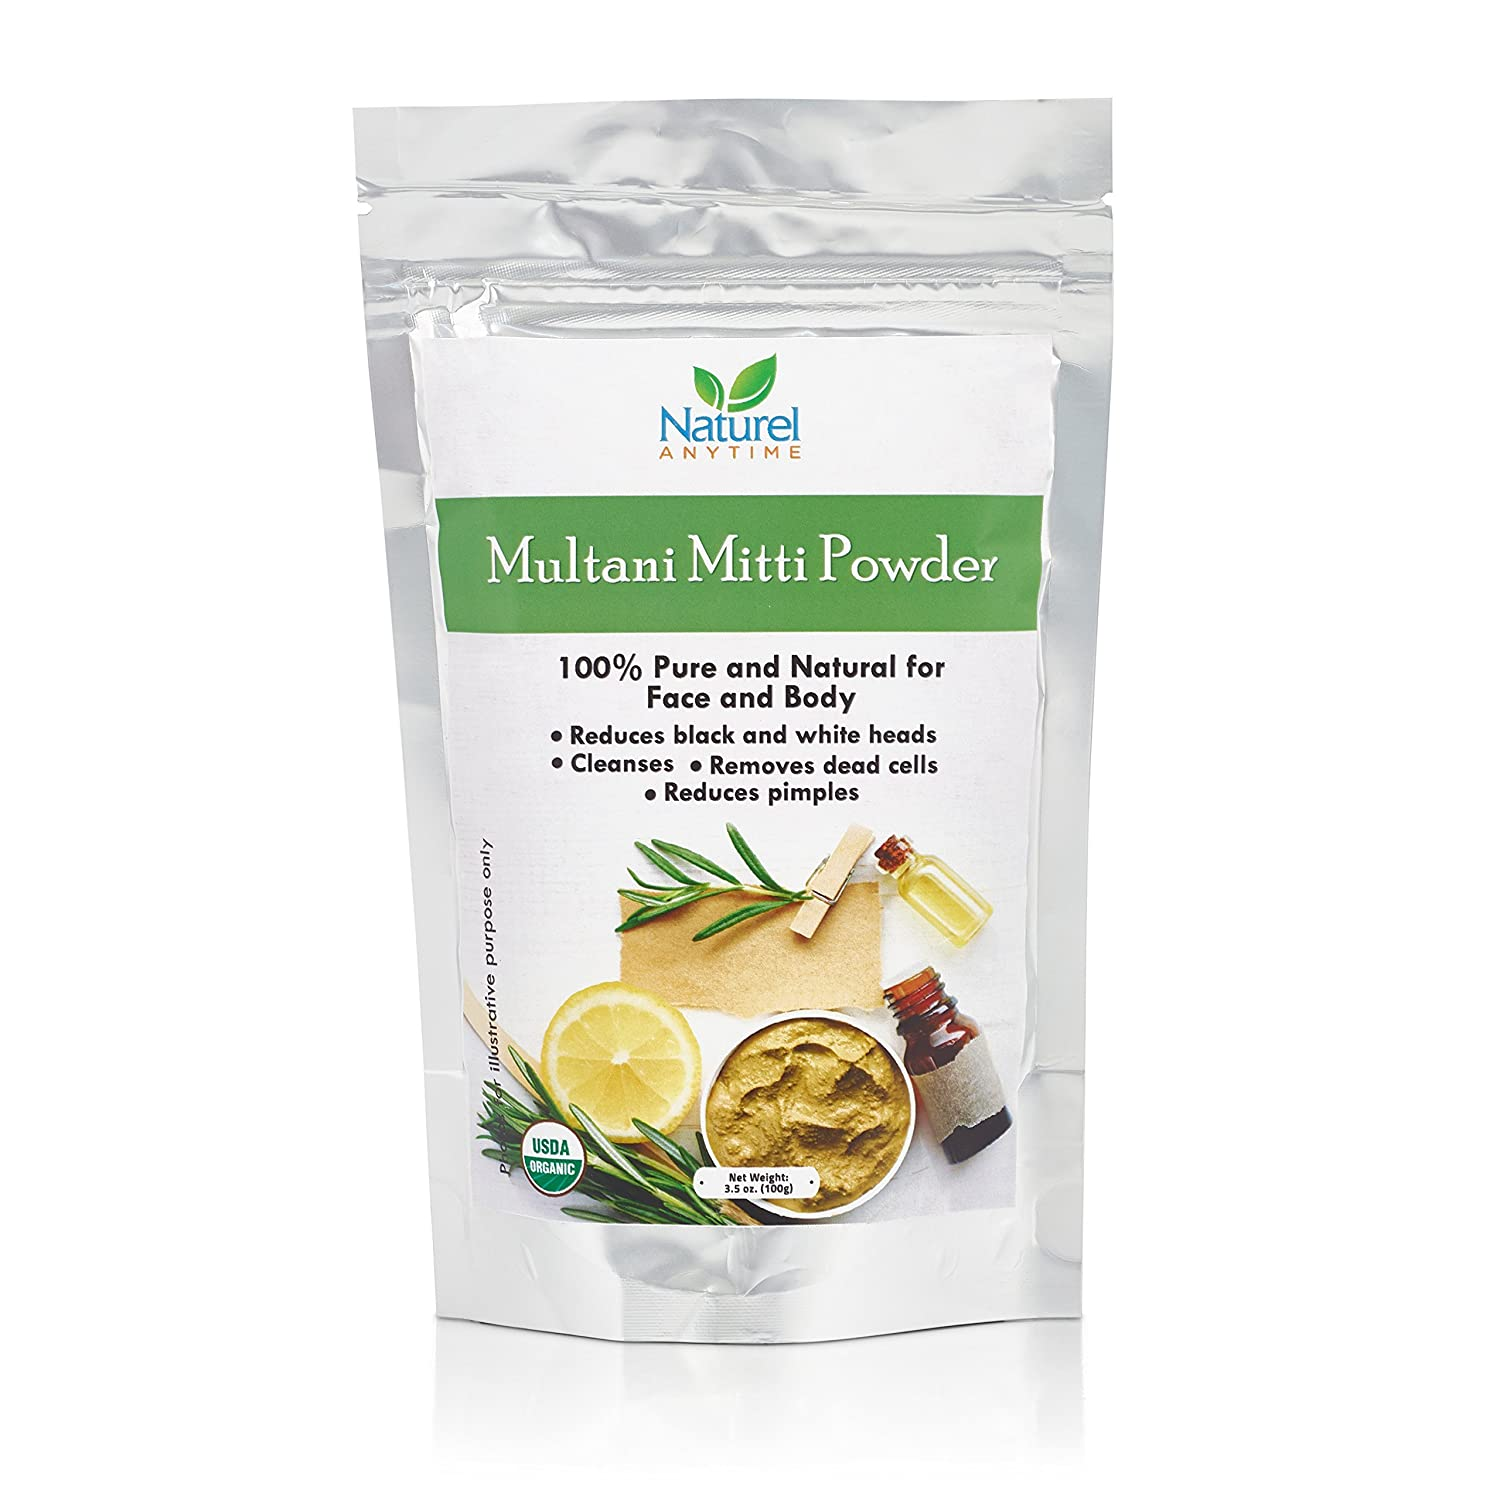 Naturel Anytime USDA Organic Multani Mitti powder/Bentonite 100gm- 100% Pure and Natural for Face and Body - FREE POSTAGE Two face pack recipe suggestions are provided with the product. Helps in reducing black and white heads. Excellent cleanser and exfol